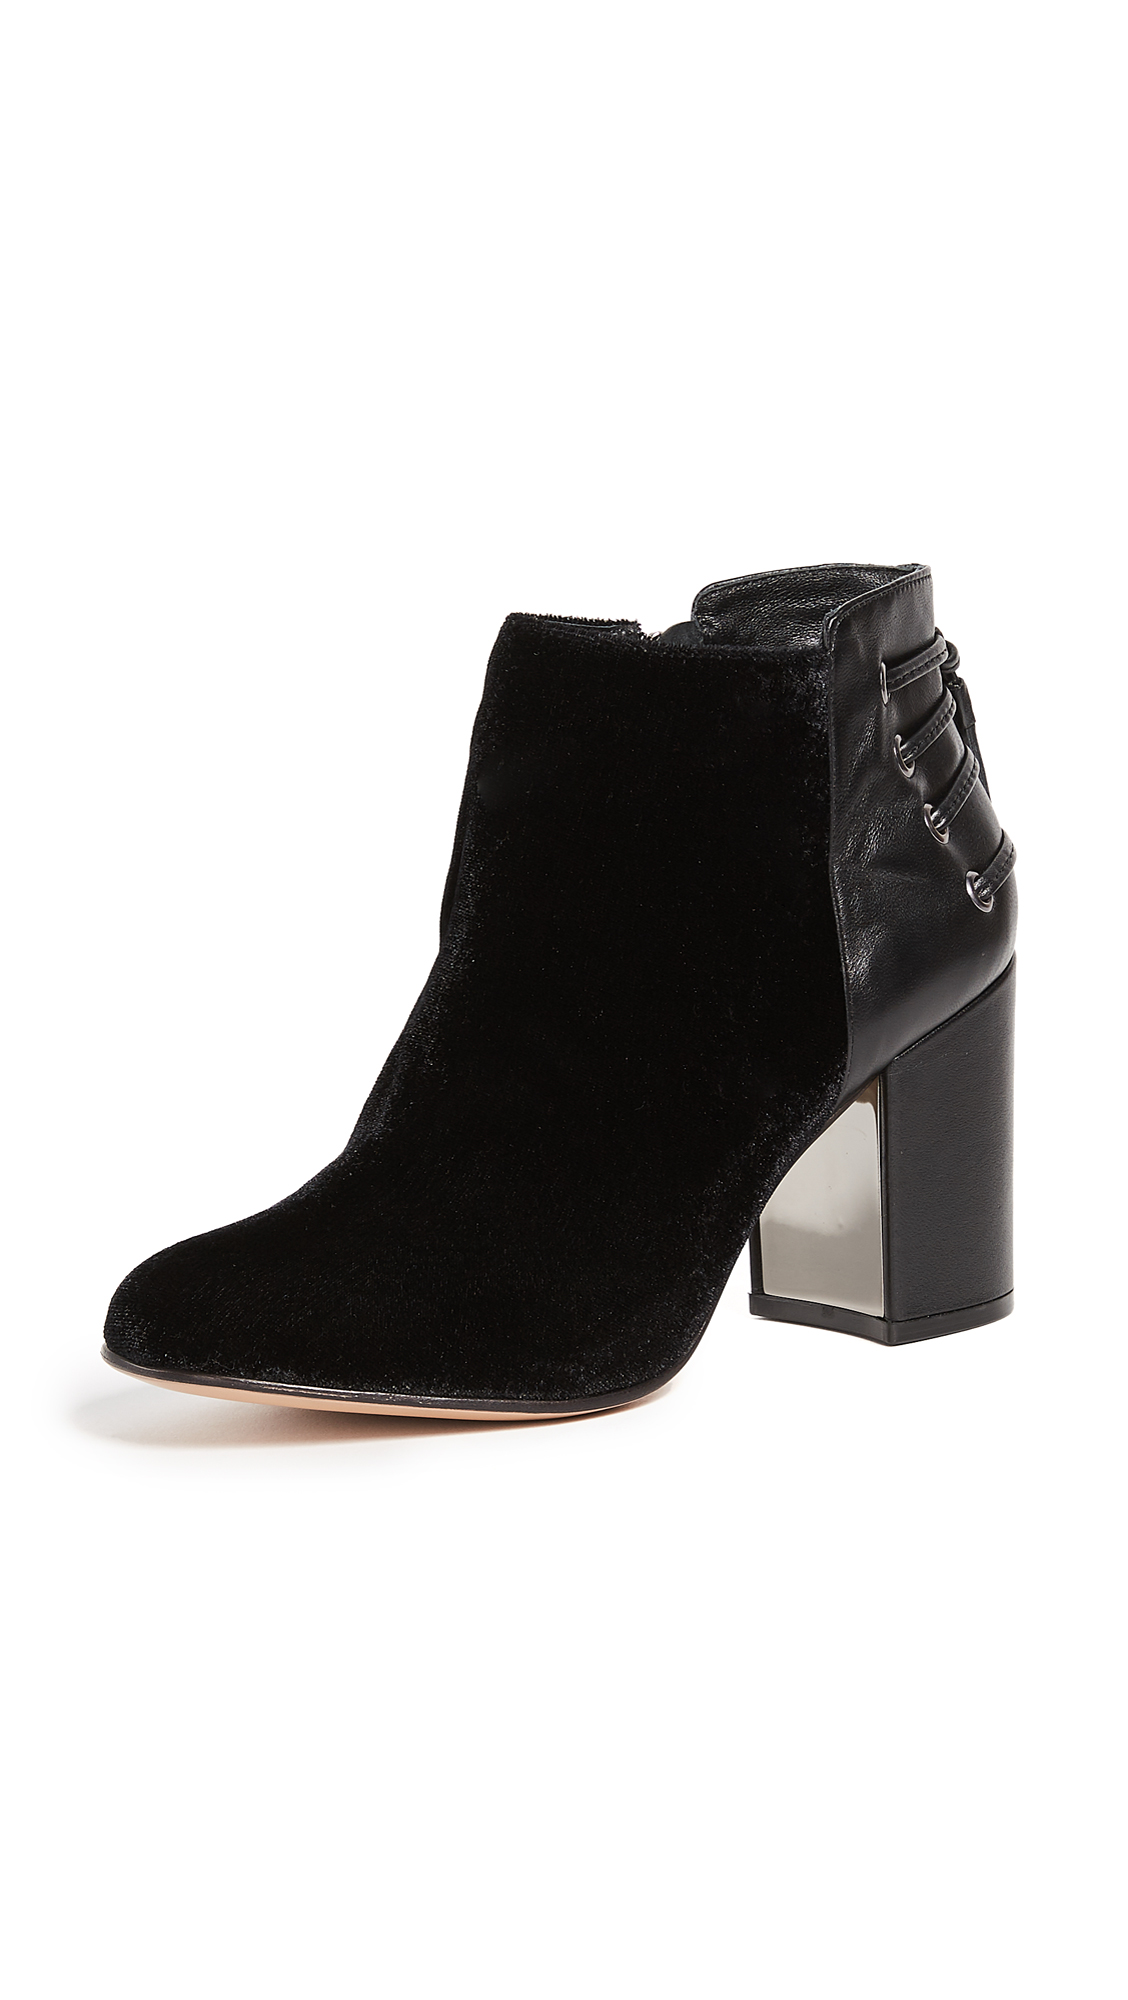 Rachel Zoe Twiggy 2 Booties - Black